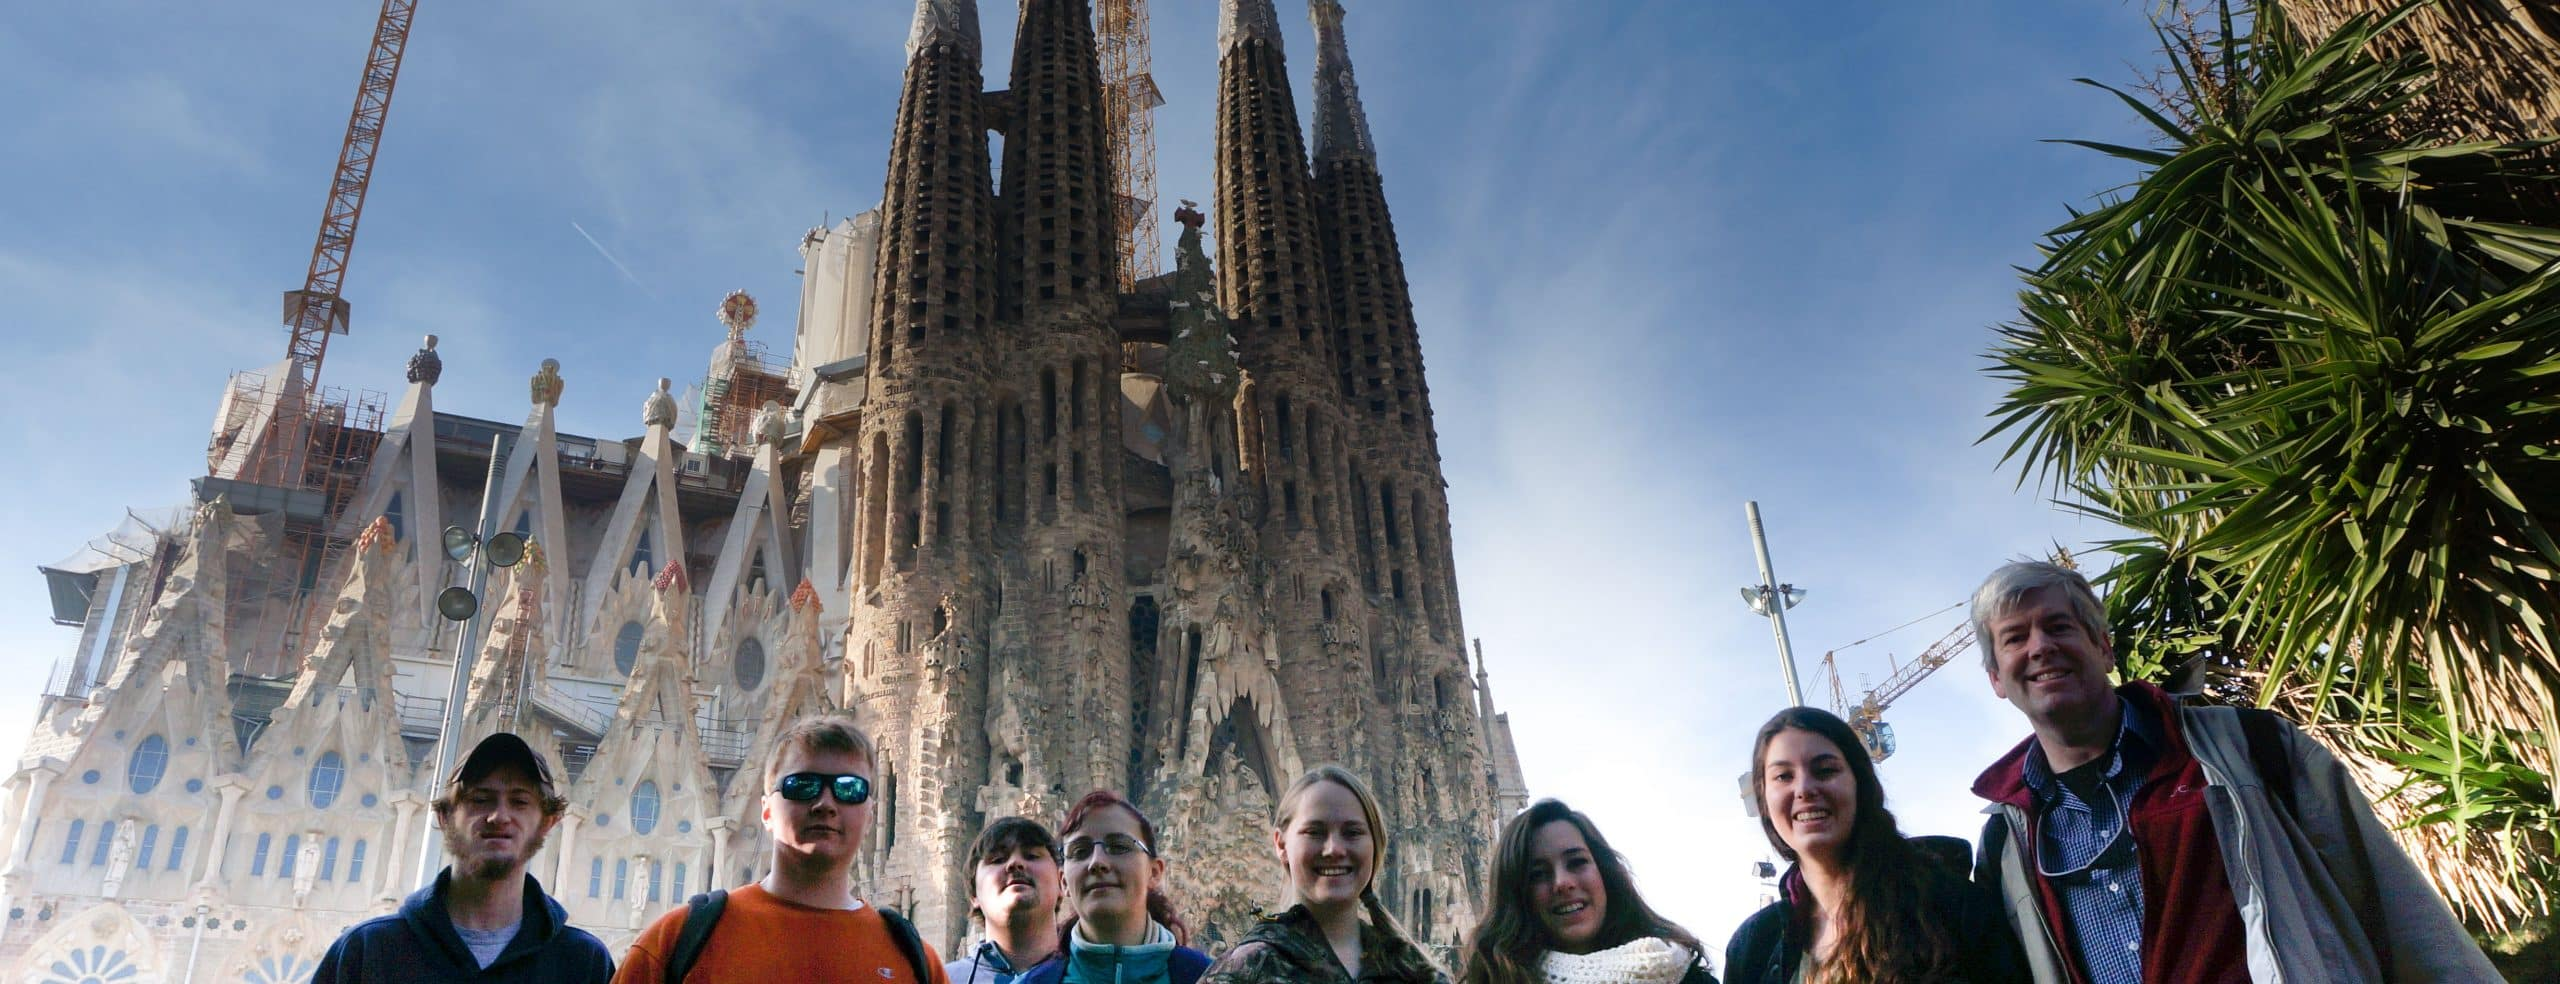 group of students traveling abroad, architectural engineering, fun, trip, travel